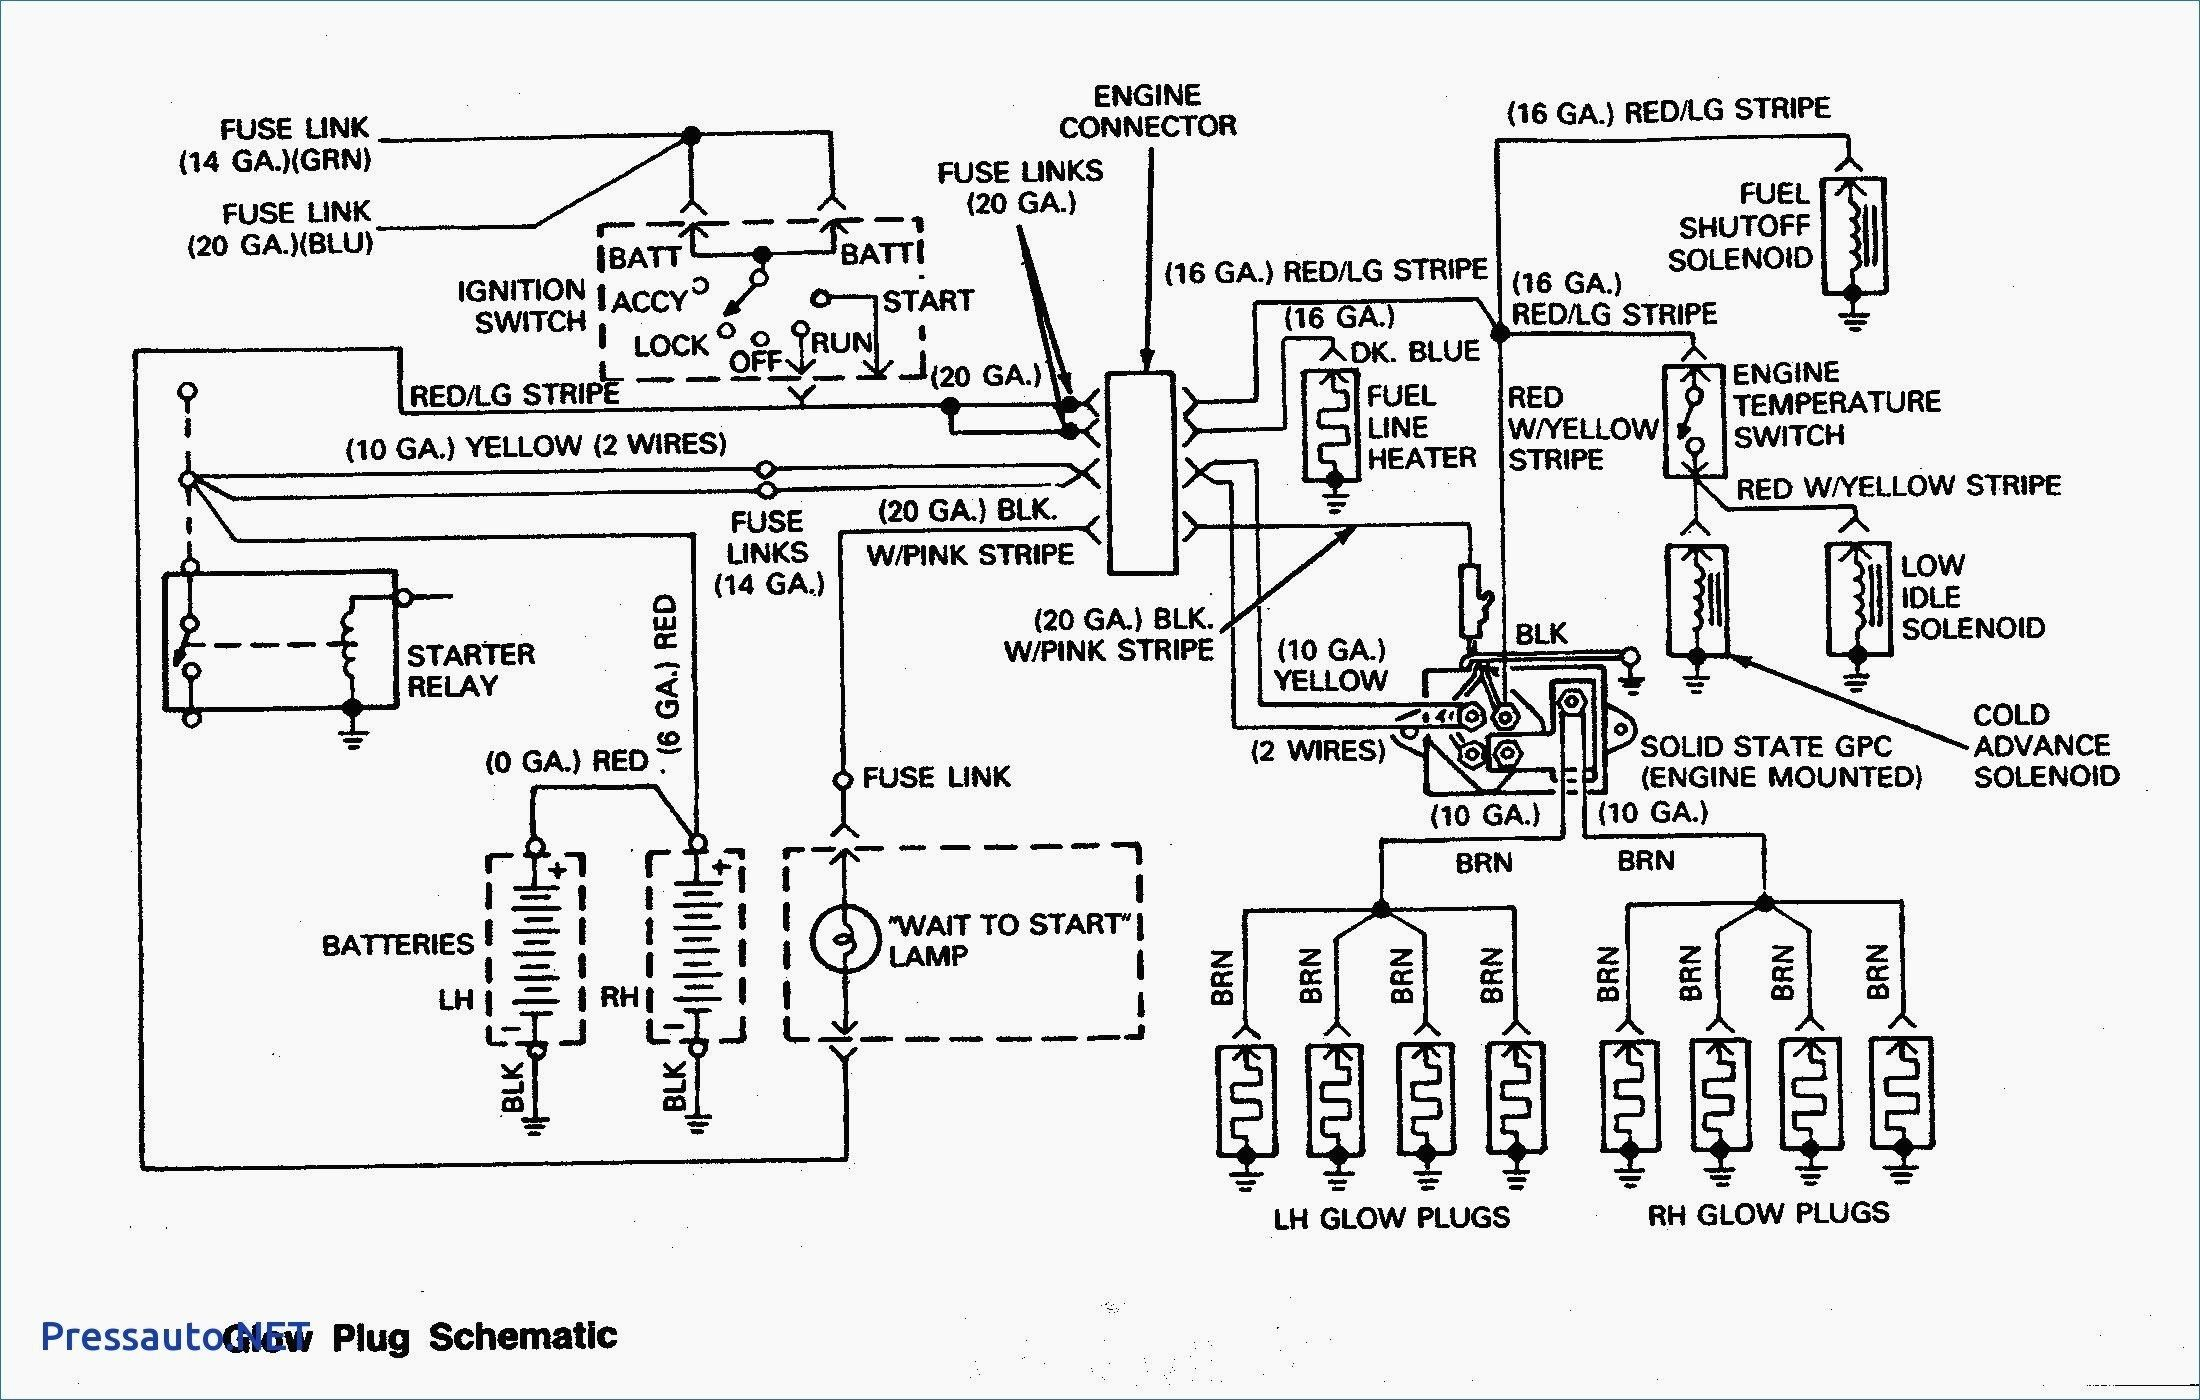 Bargman Plug Diagram Free Download Wiring Diagrams Pictures Wiring